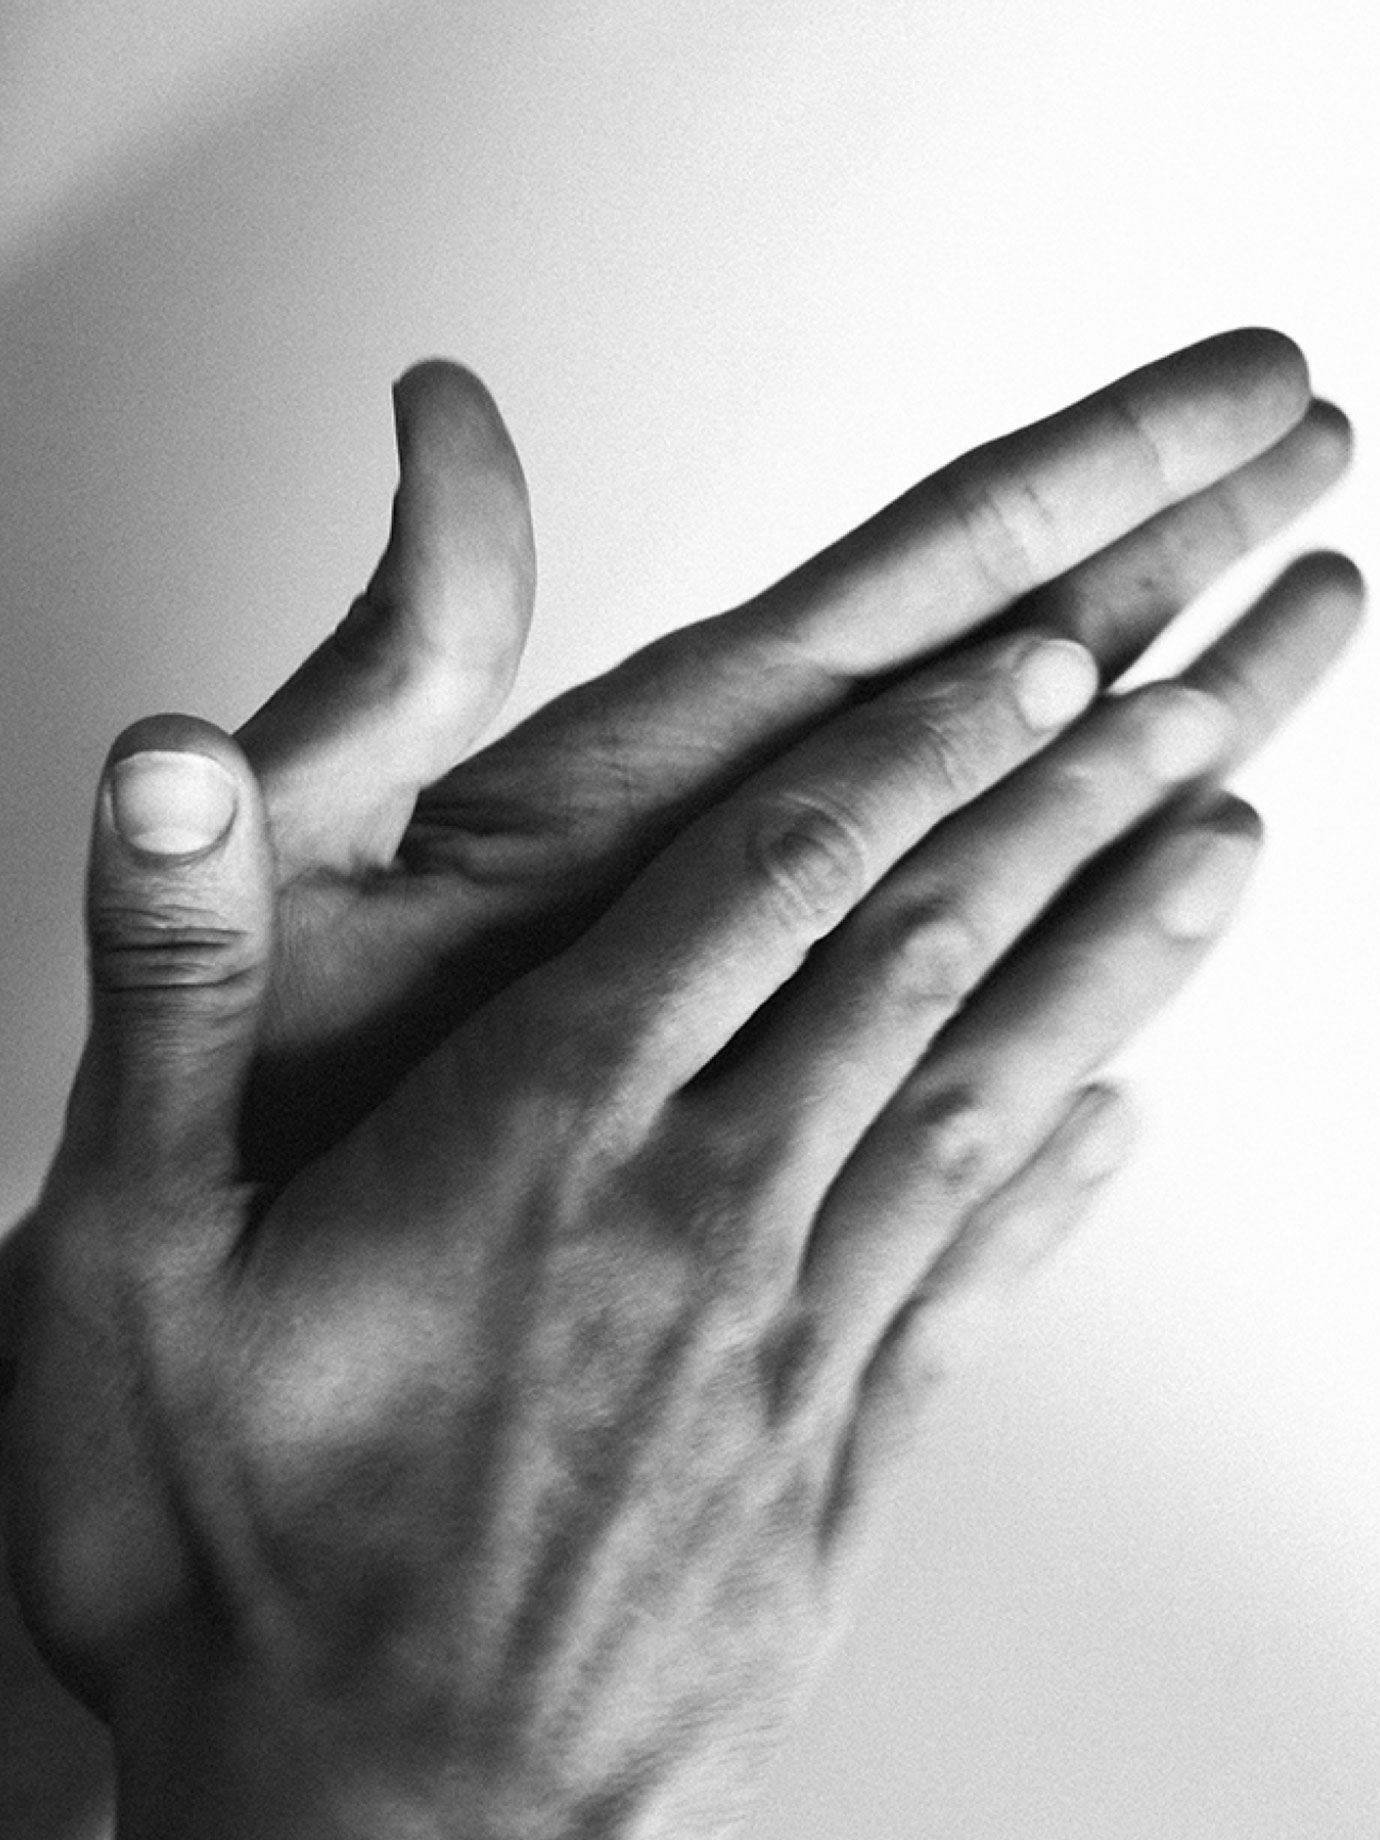 Black and white hands gesticulating.